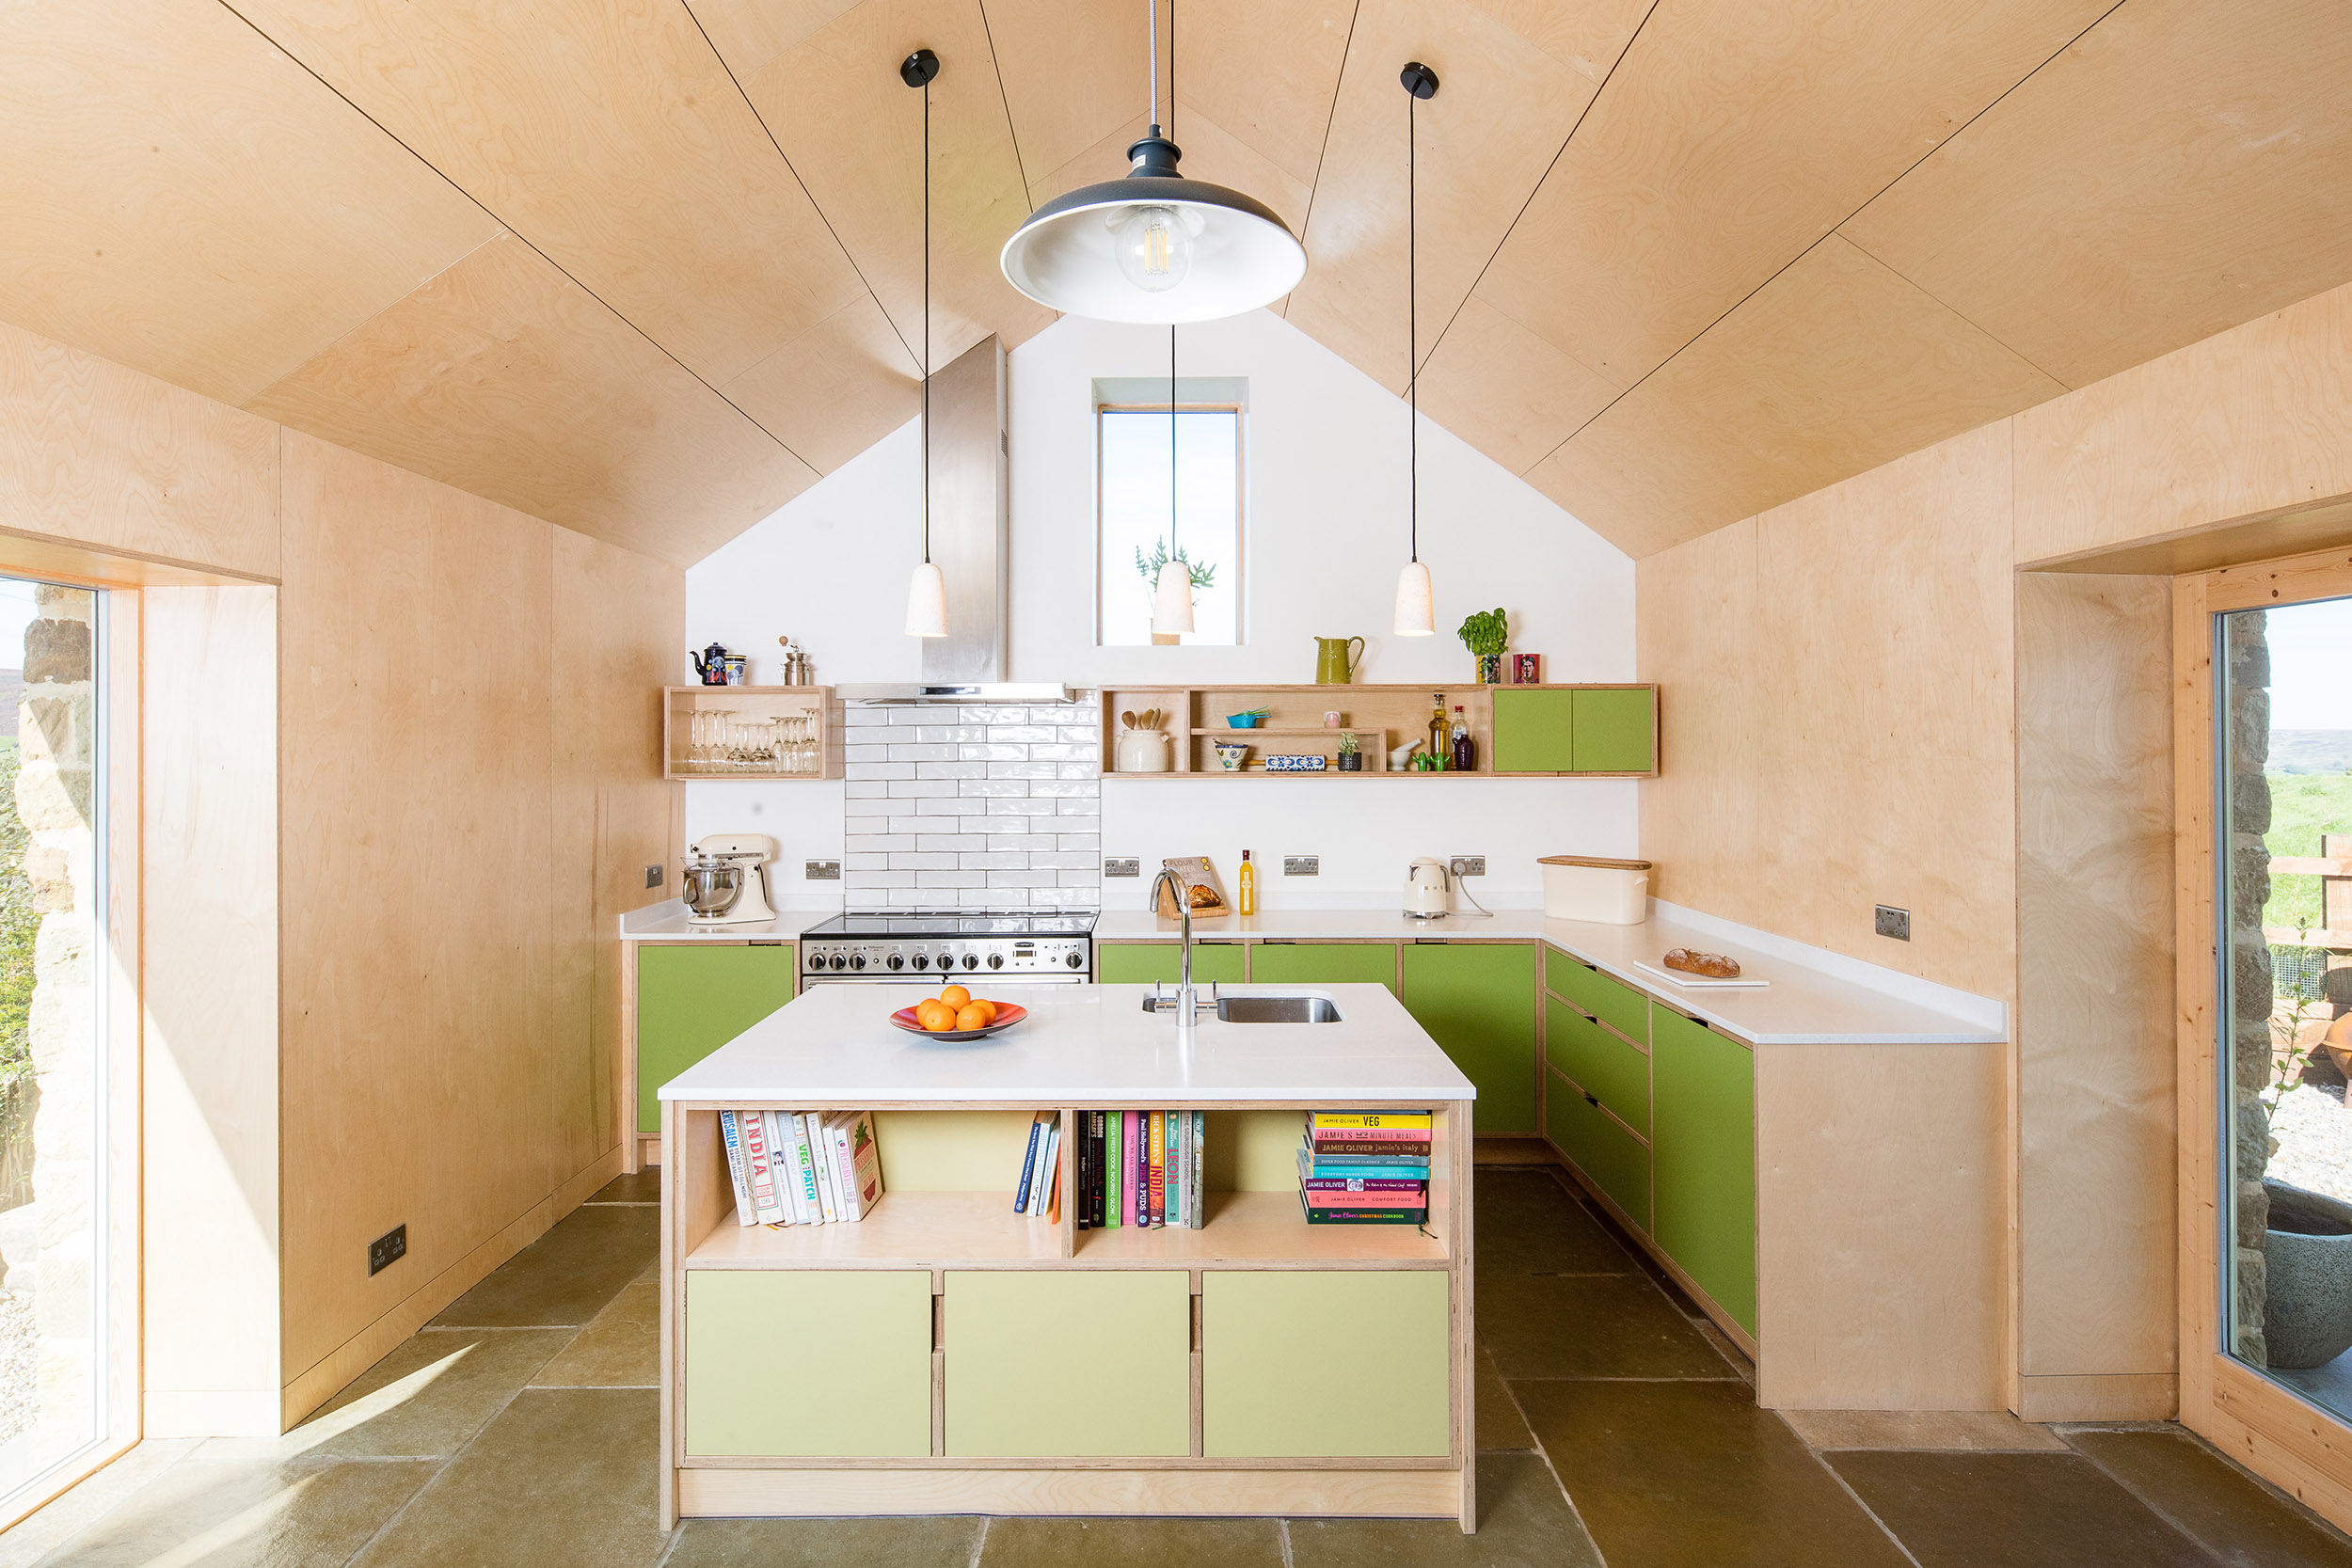 harper-perry-architects-housing-barn-westerdale-north-yorkshire-interior-plywood-island-kitchen